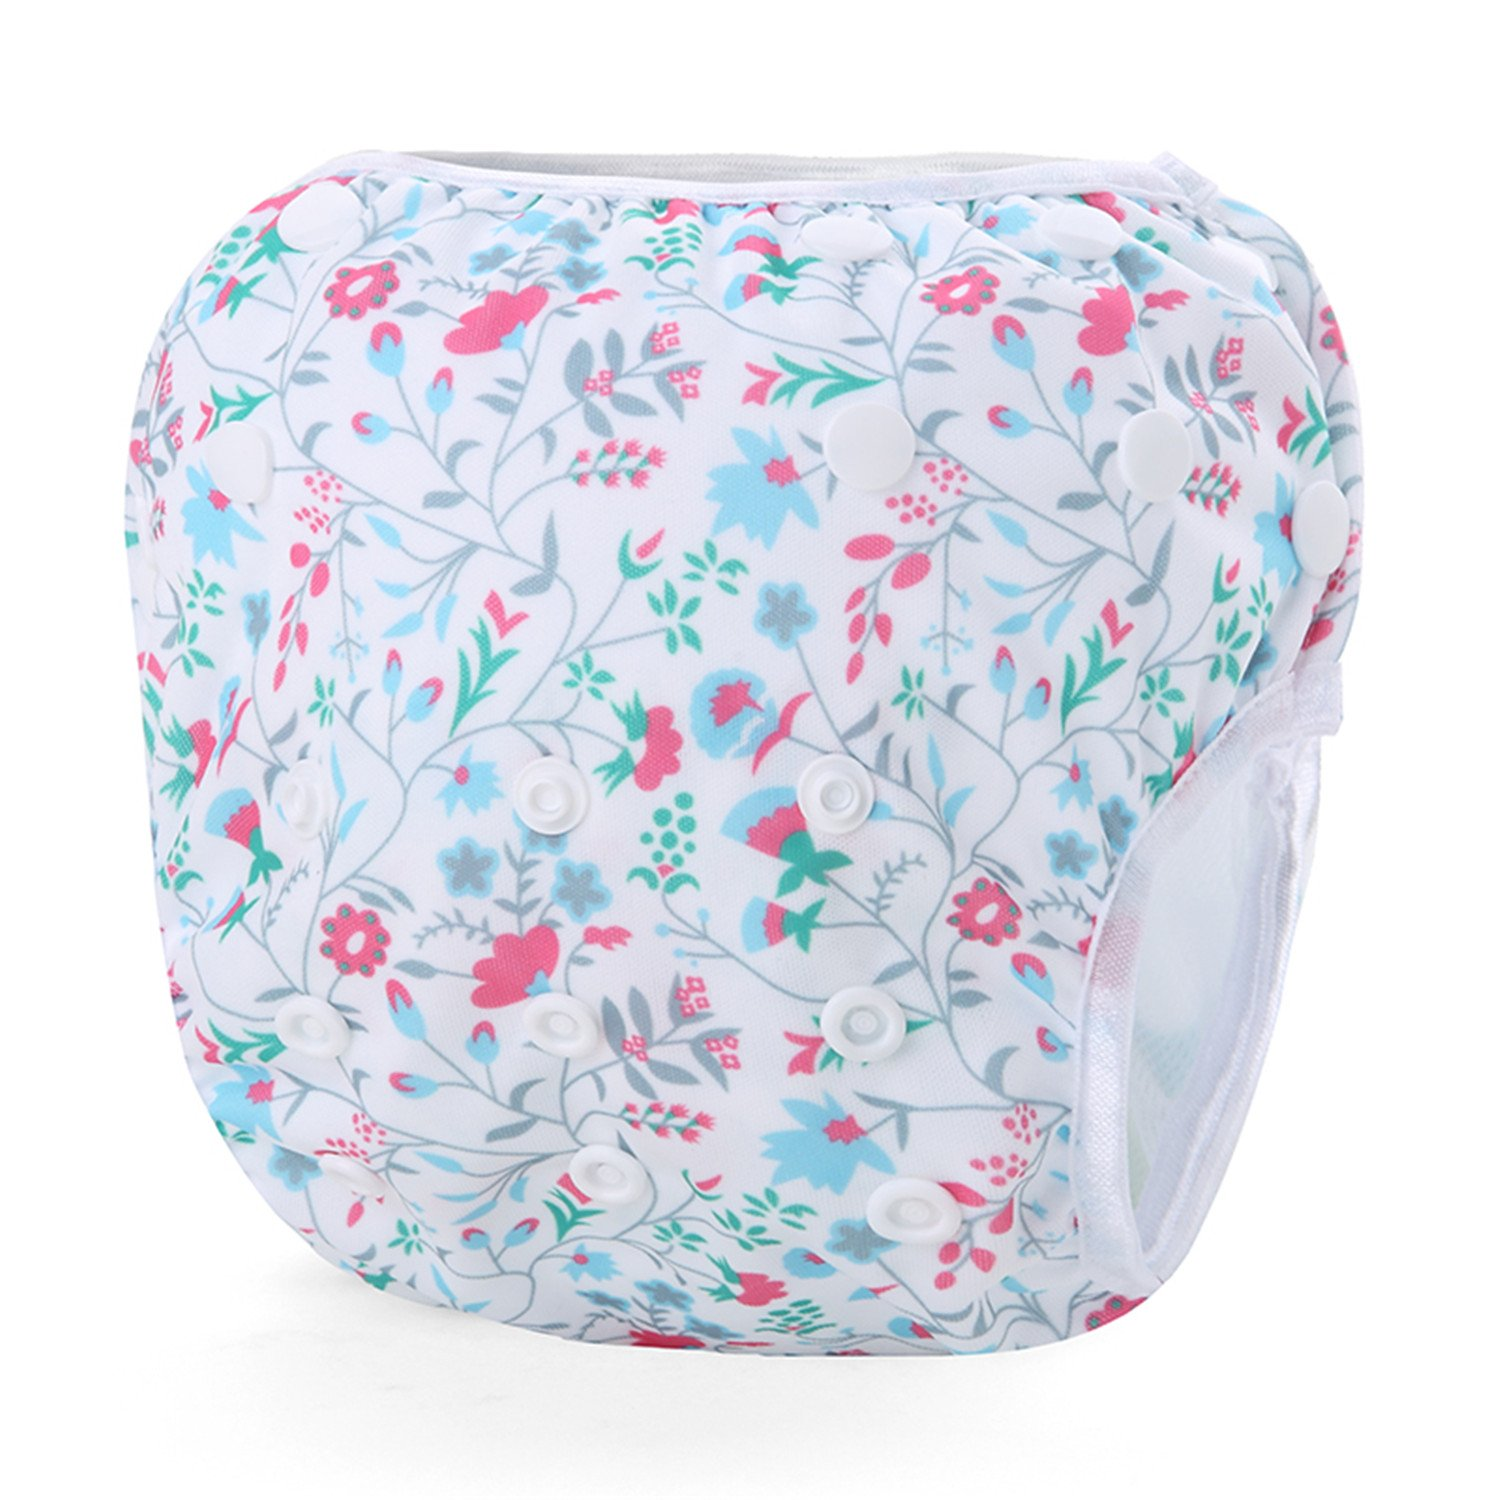 Storeofbaby Swim Diapers for Baby Reusable Adustable Stylish Baby Shower Gifts